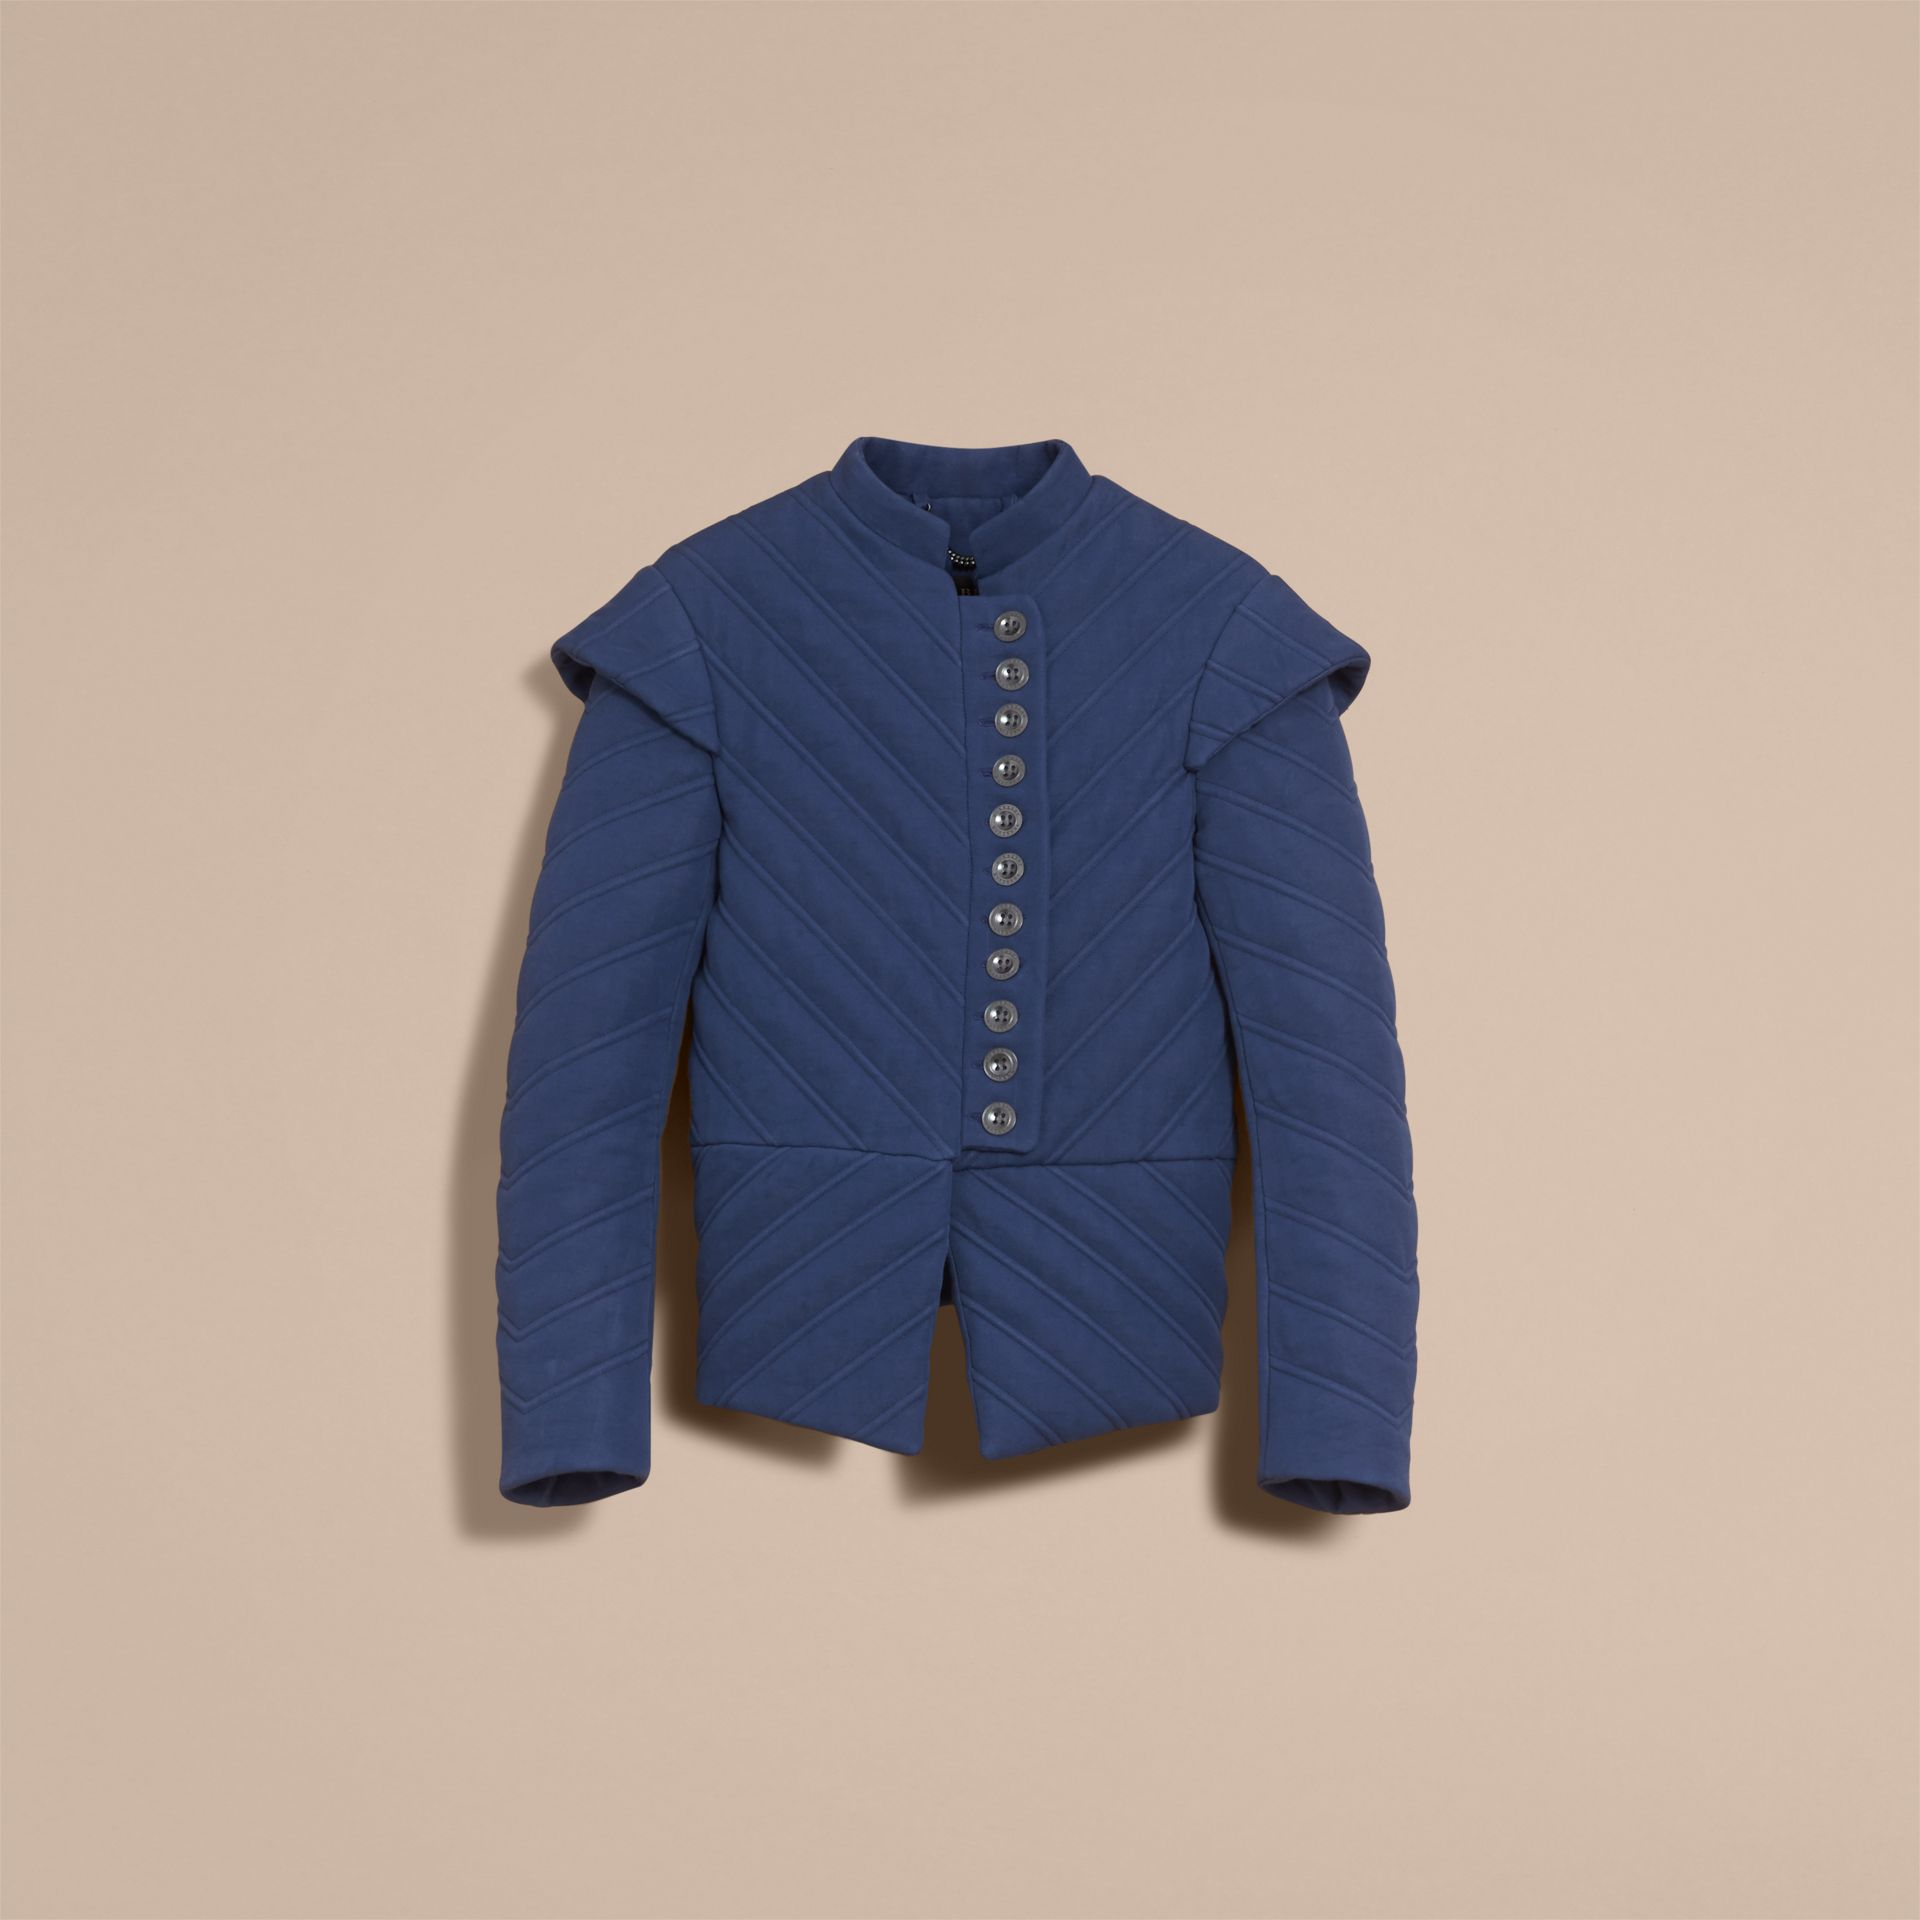 Quilted Ramie Cotton Military Jacket in Indigo - Women | Burberry - gallery image 4